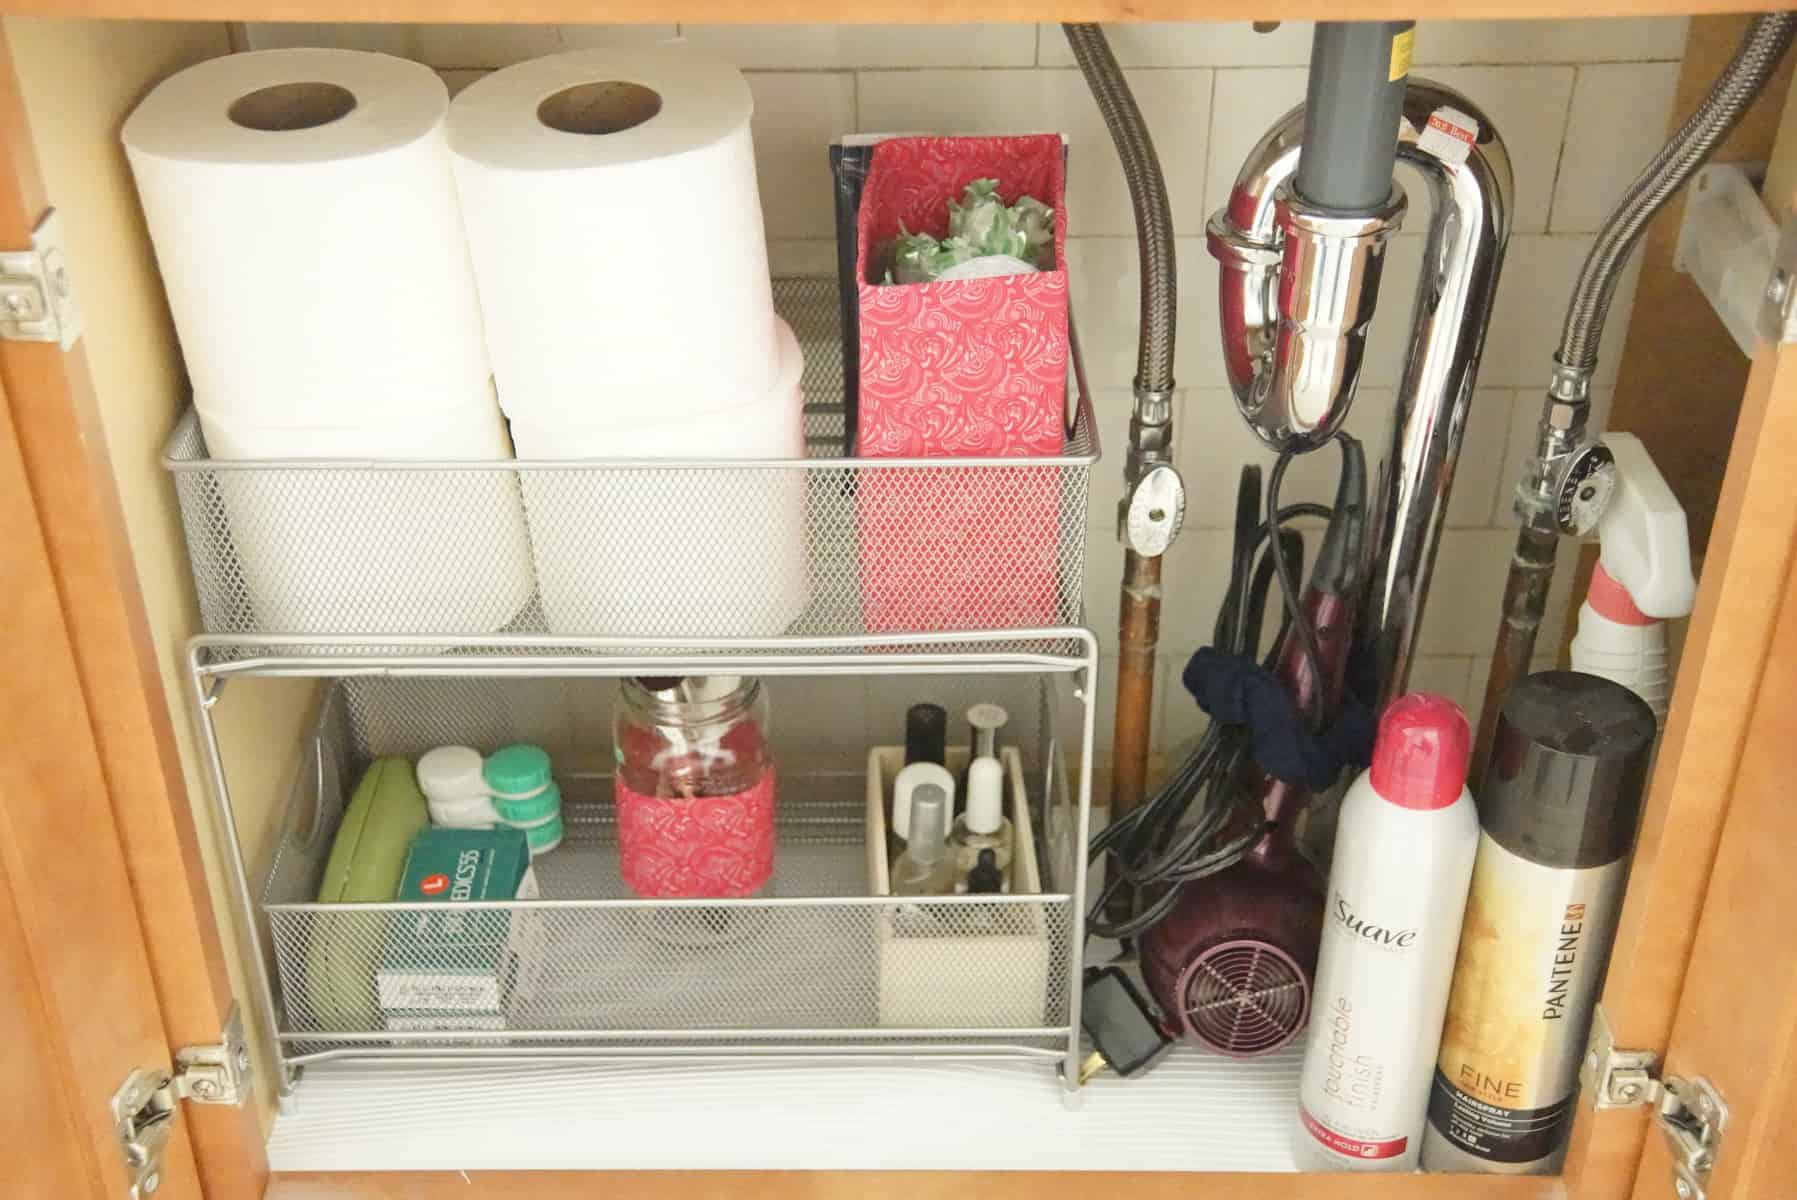 organize bathroom cabinet under sink organizing bathroom sinks heartwork organizing 23891